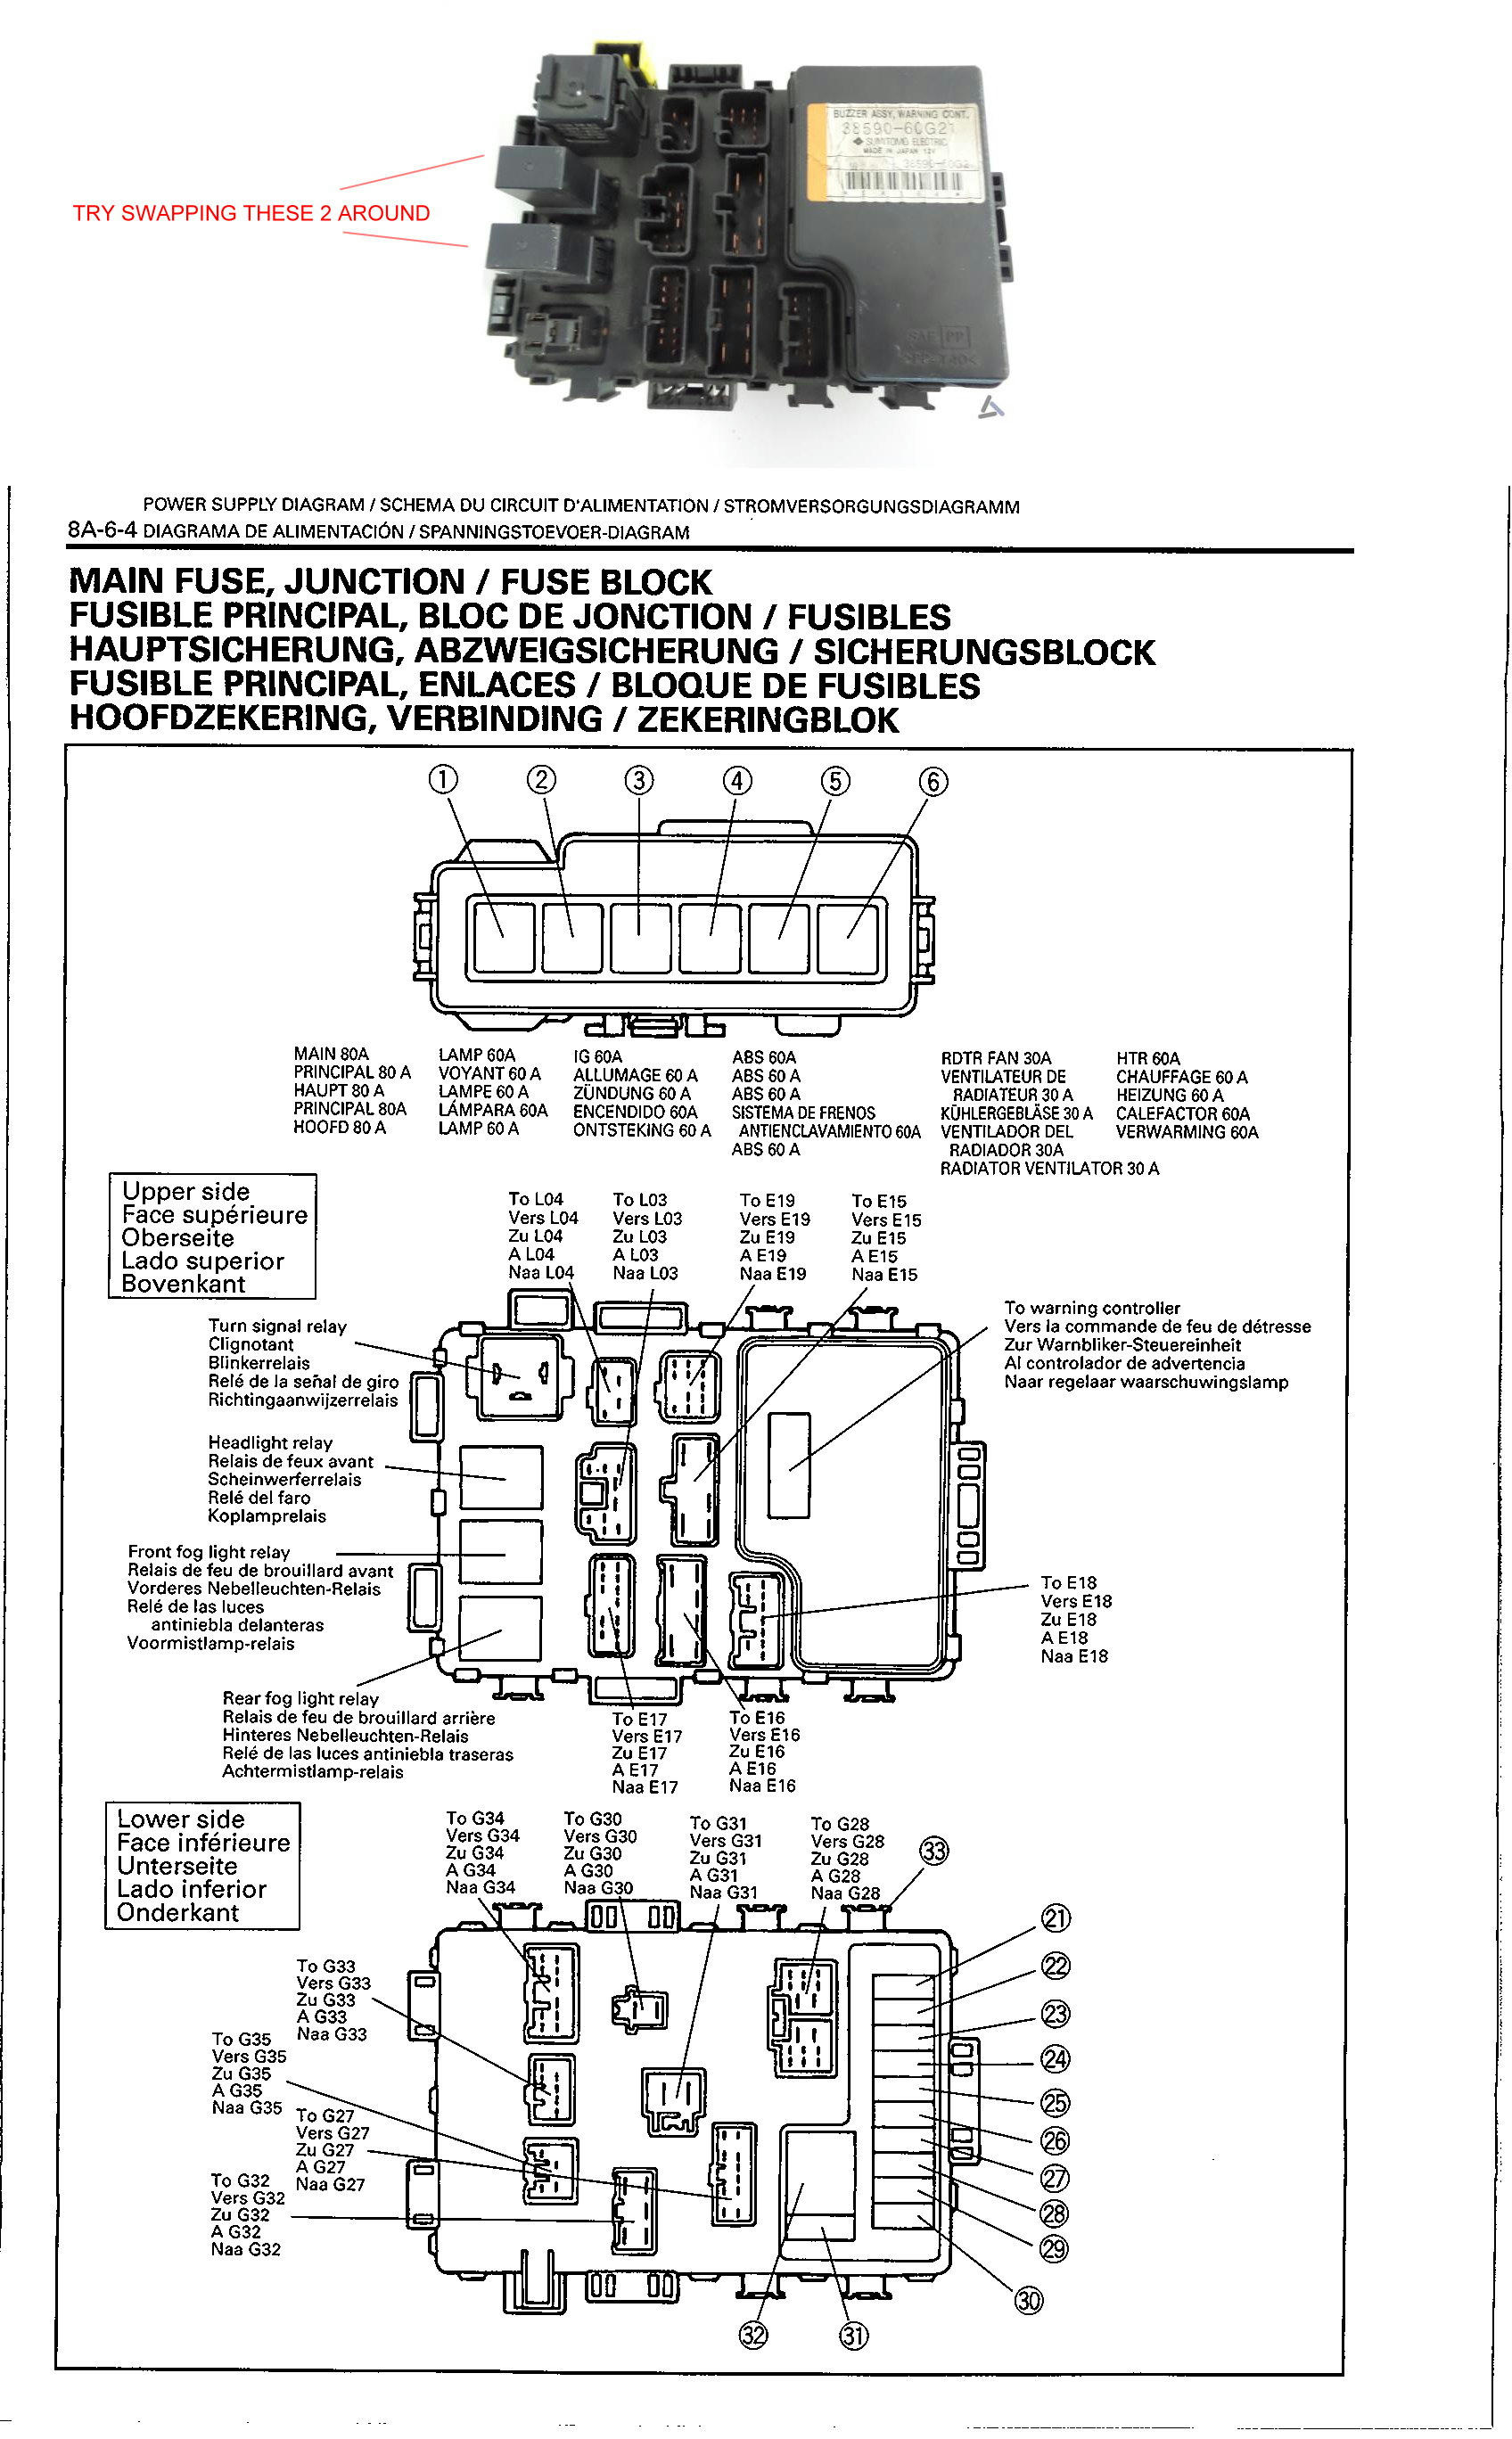 Suzuki Esteem Fuse Box Location